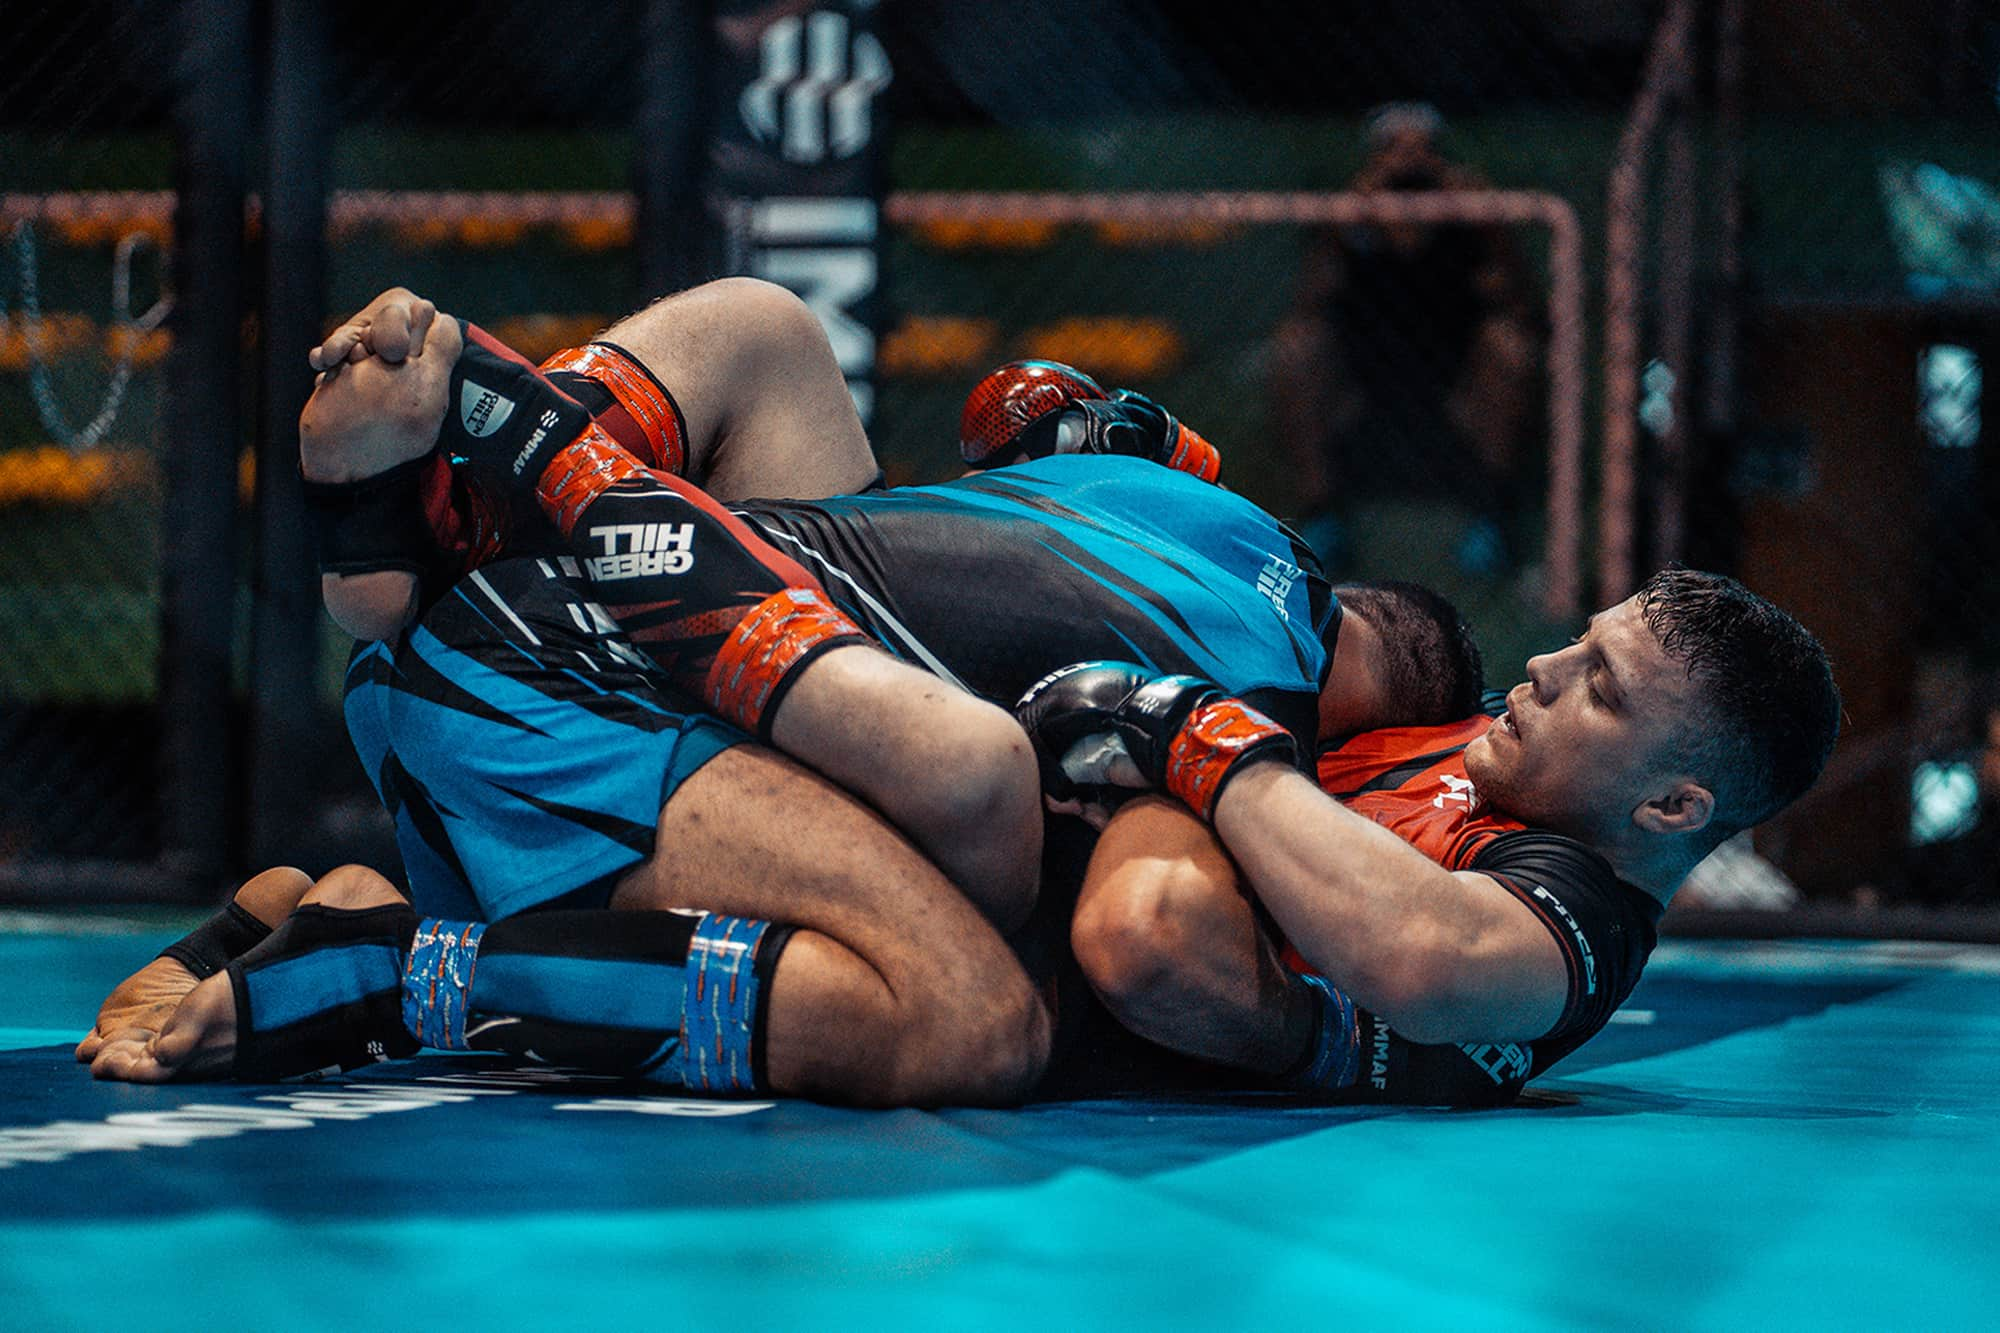 IMMAF Events Team unveil new Team Penalty point system for testing in 2021